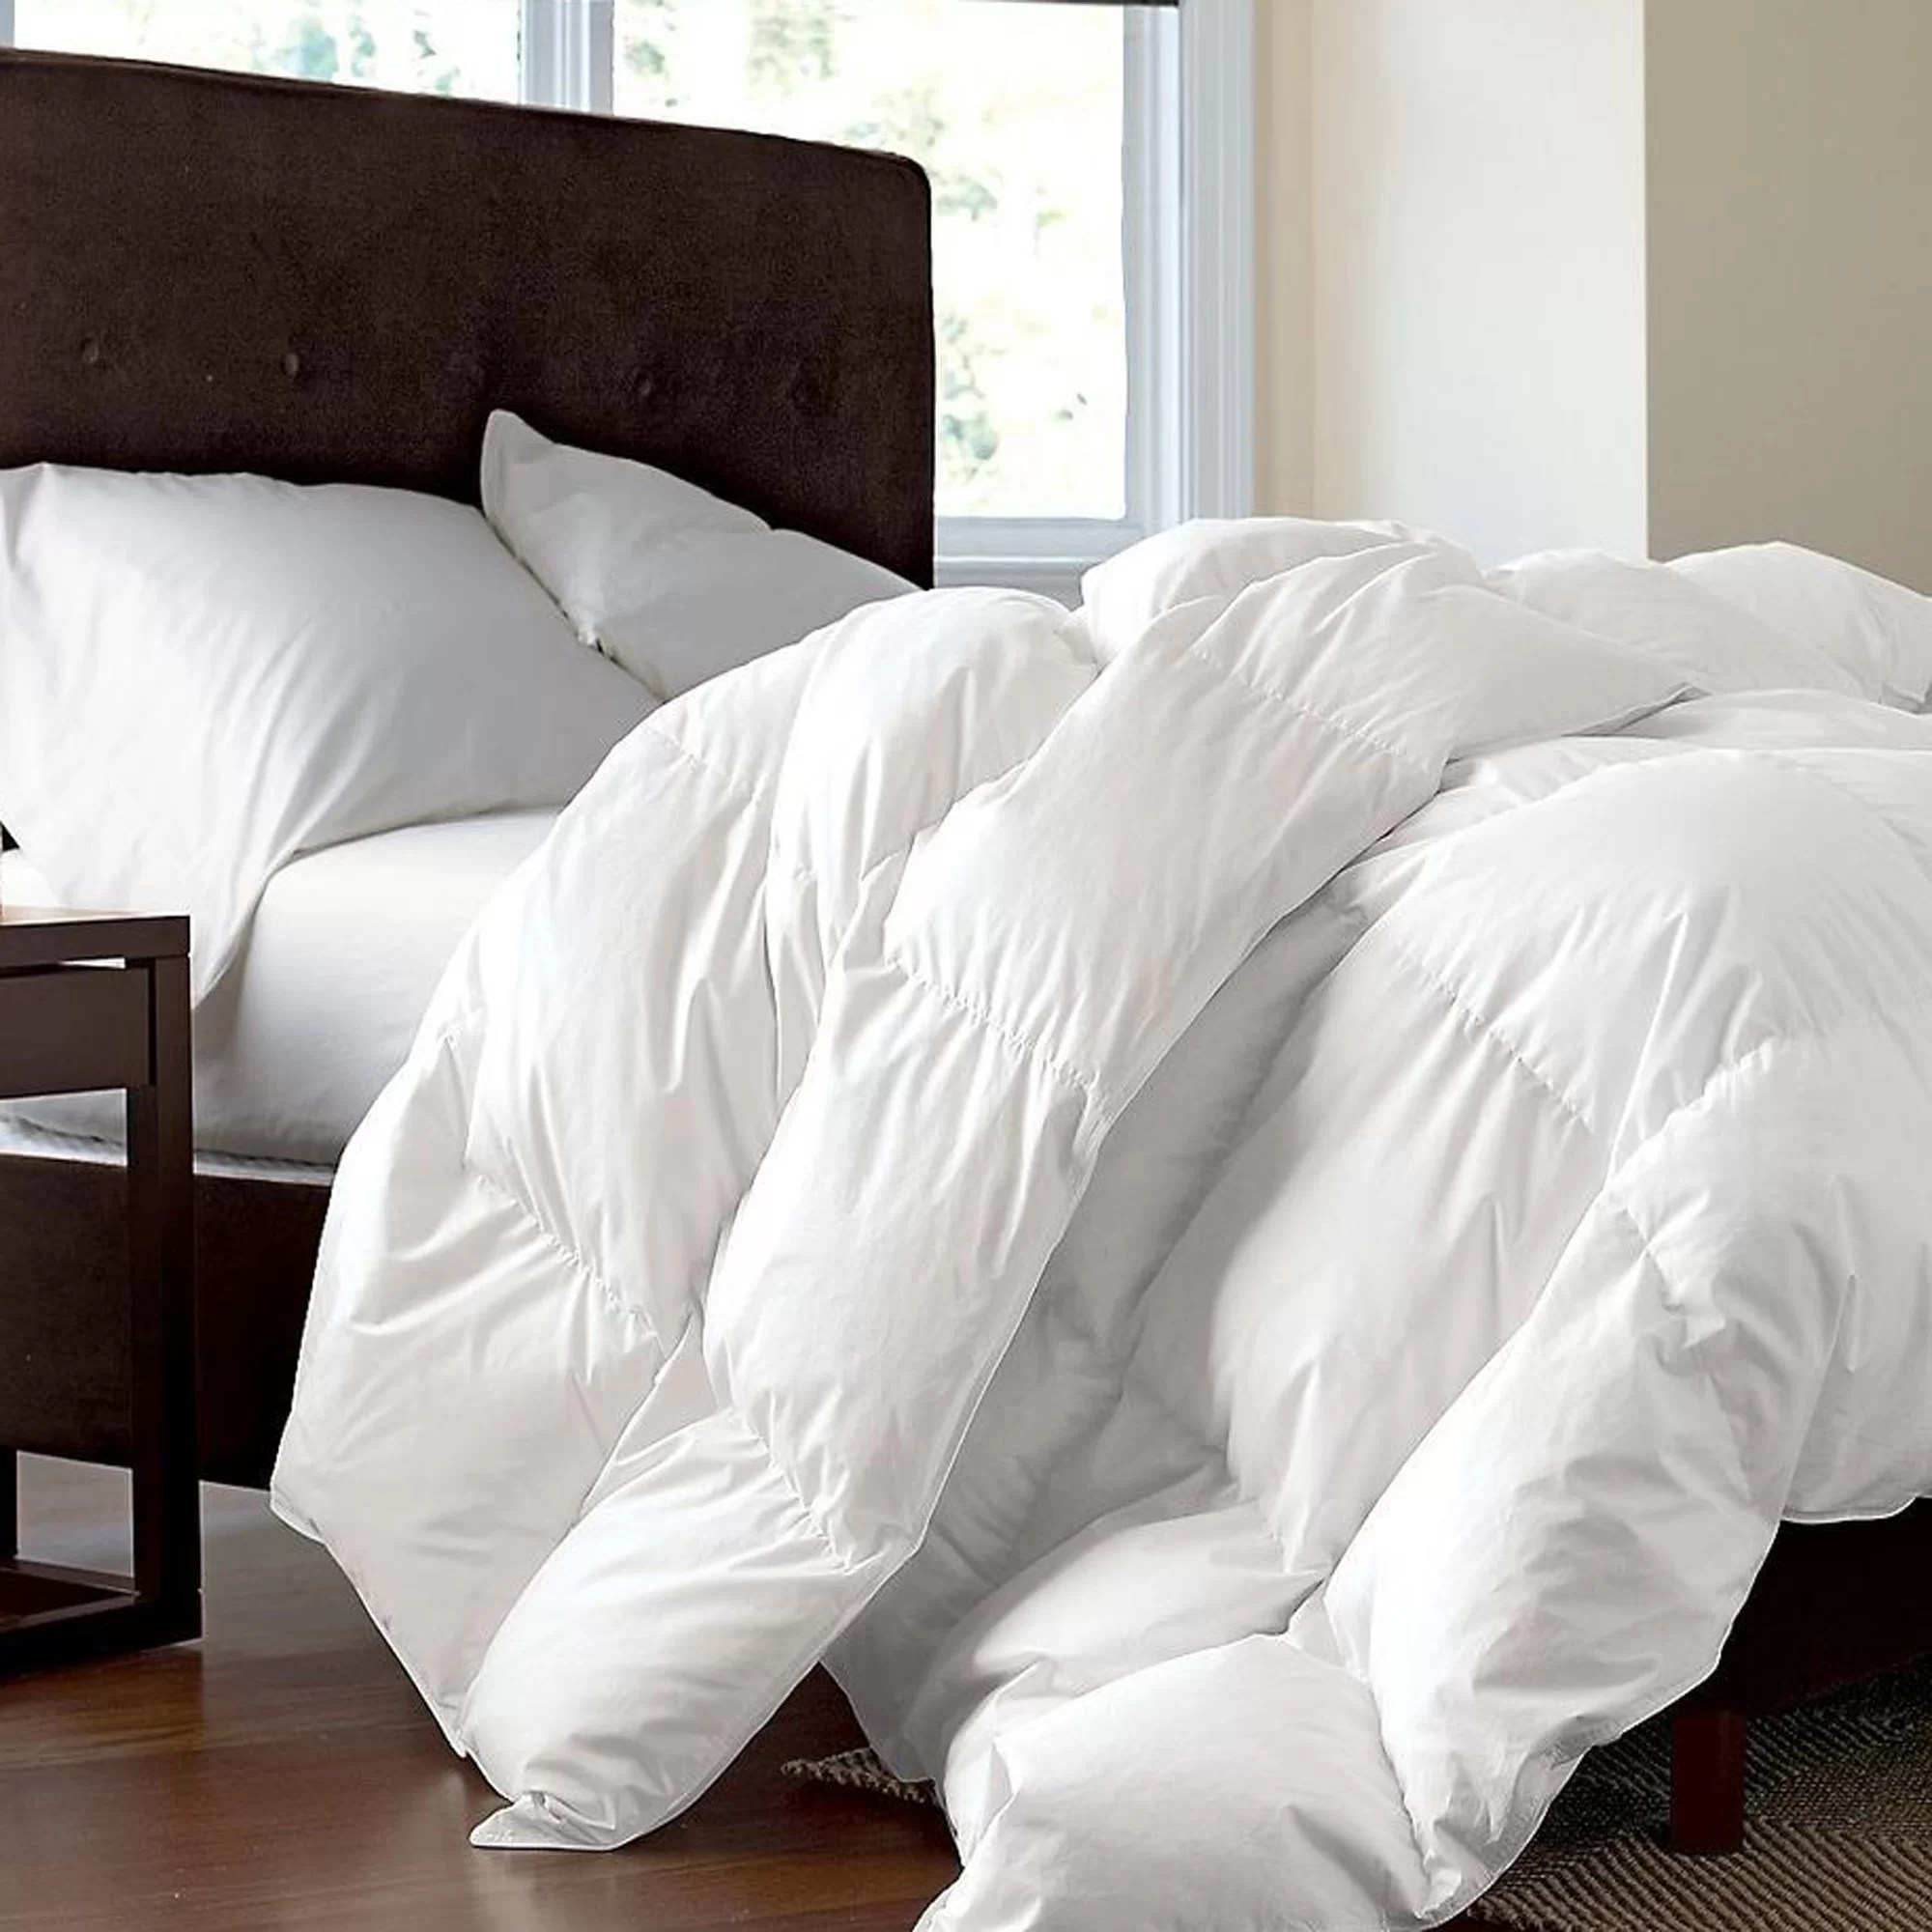 Simply Down Canadian Dream Lightweight Summer Down Comforter Wayfair